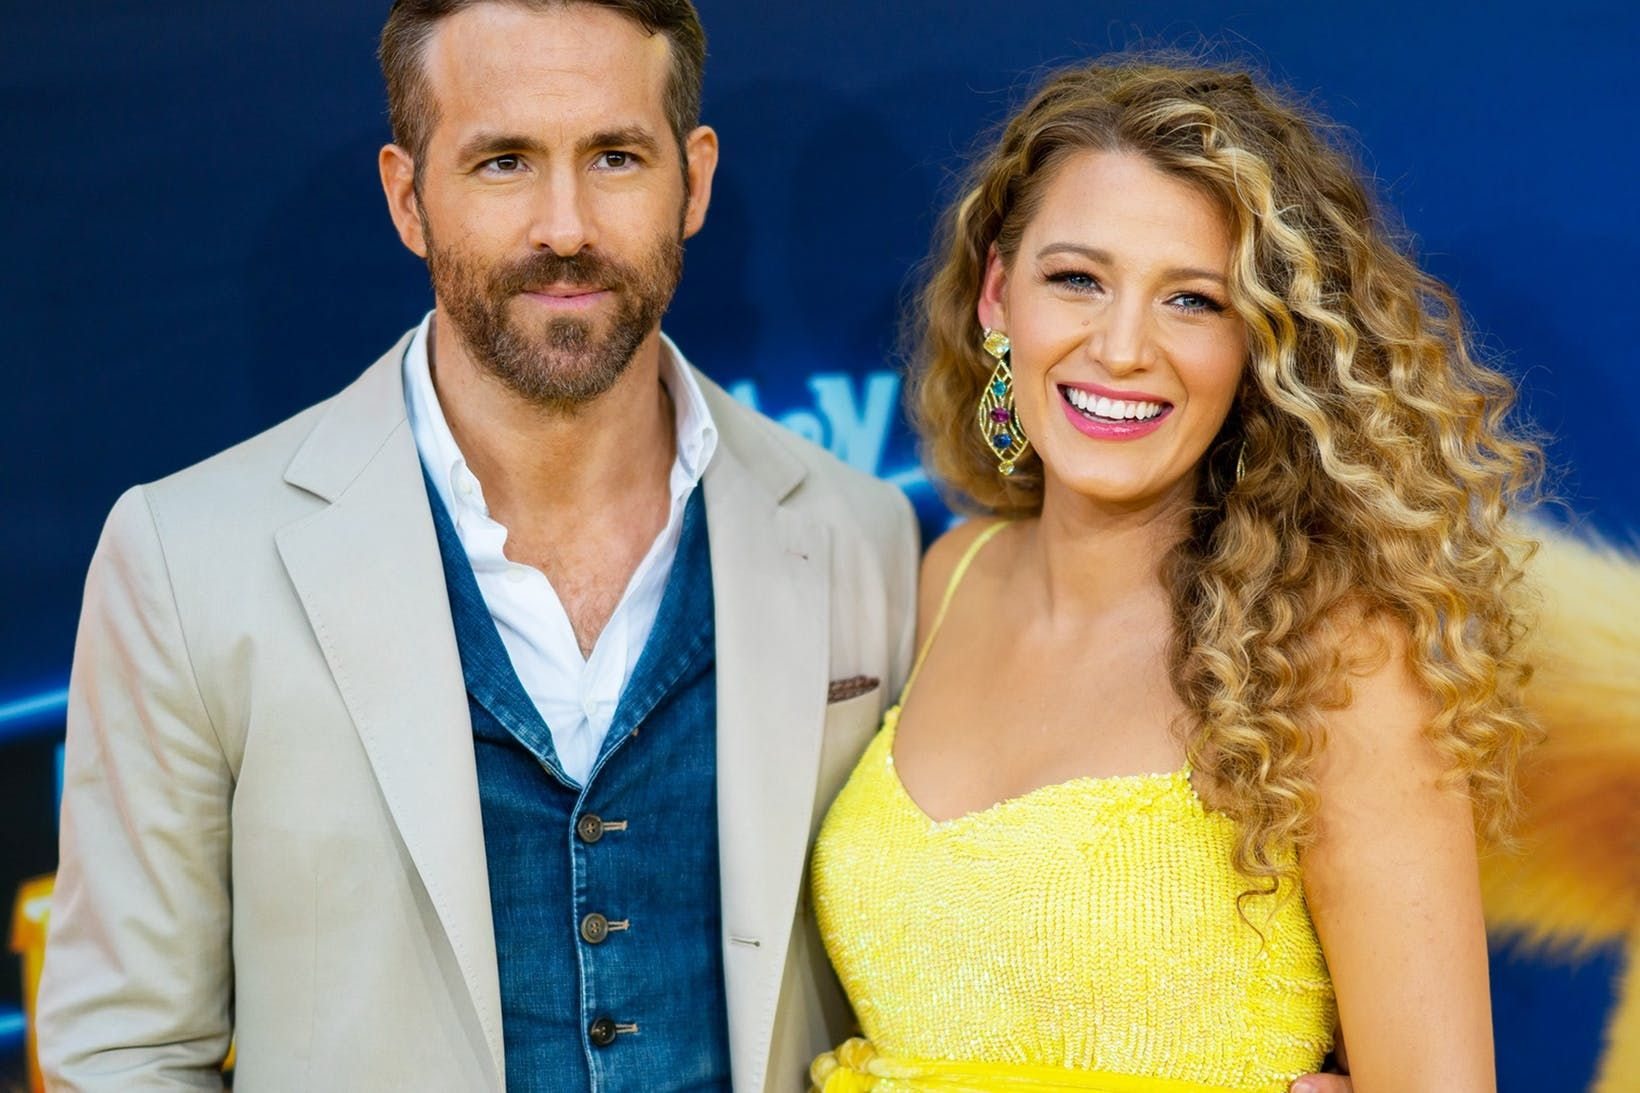 How Ryan Reynolds used Blake Lively's baby announcement to